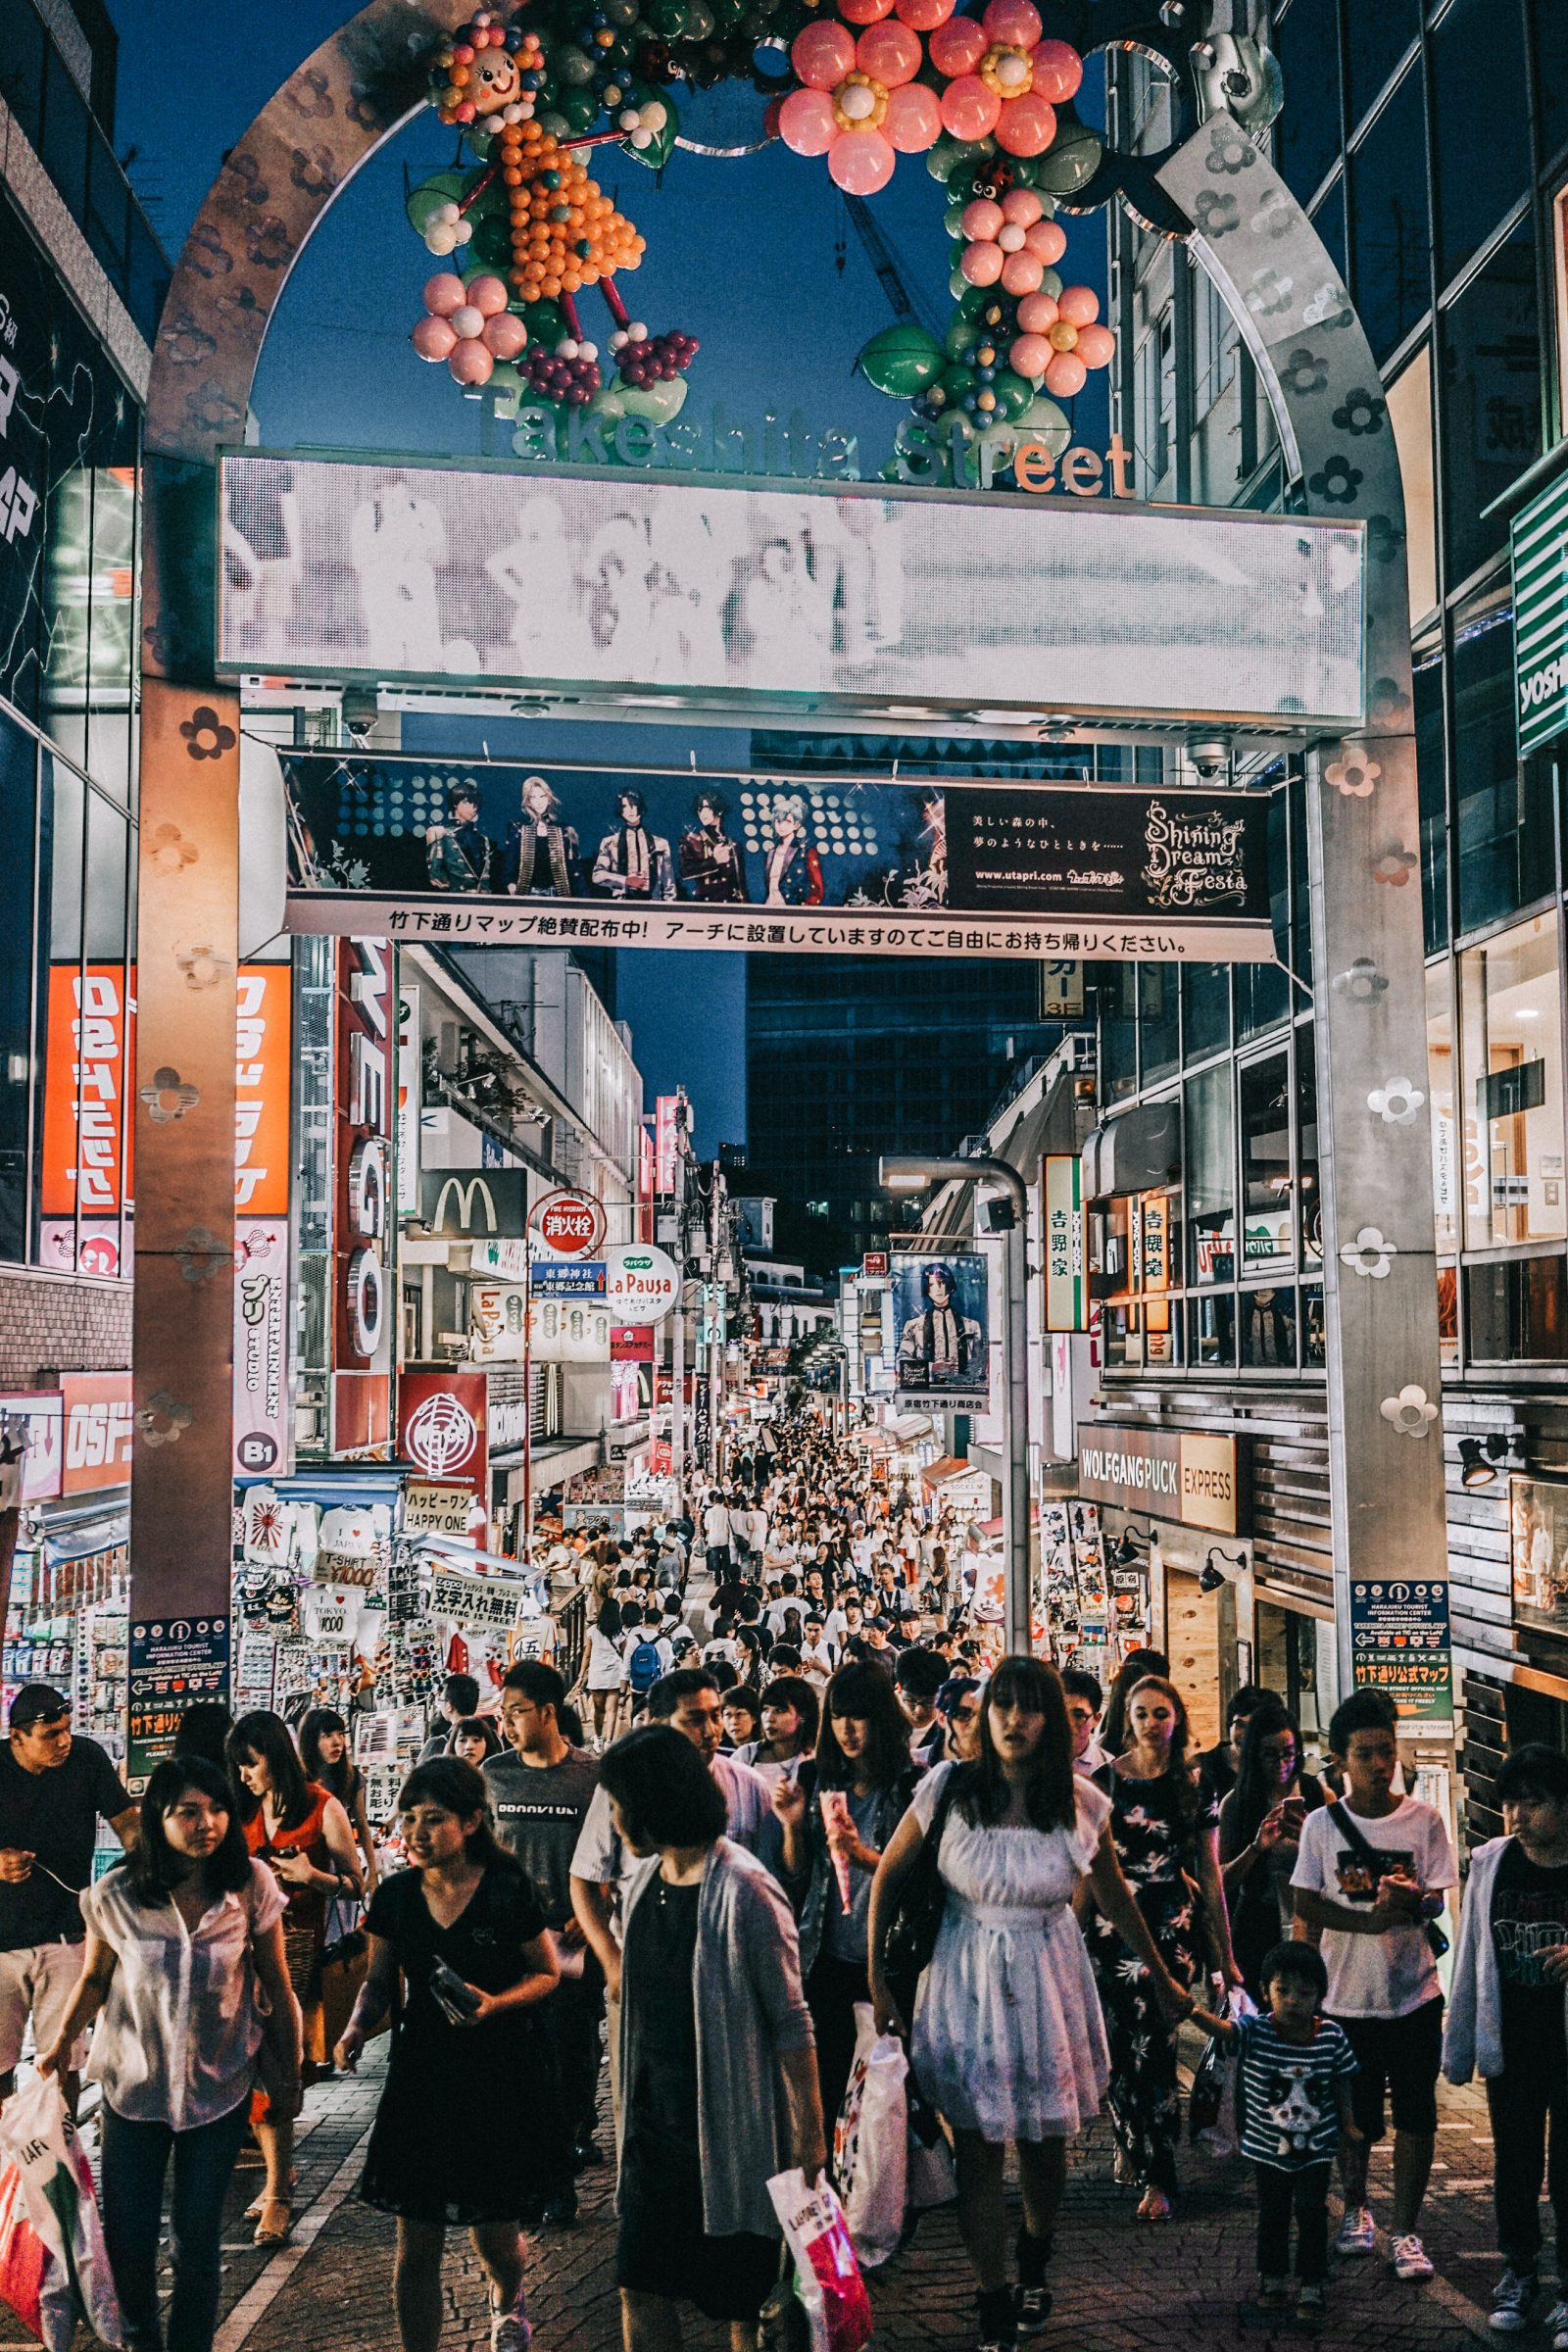 Tokyo_Travel_Guide-Outfit-Collage_Vintage-Street_Style-Lovers_And_Friends_Jumpsuit-White_outfit-Espadrilles-Backpack-Levis_Denim_Jacket-Akihabara-158